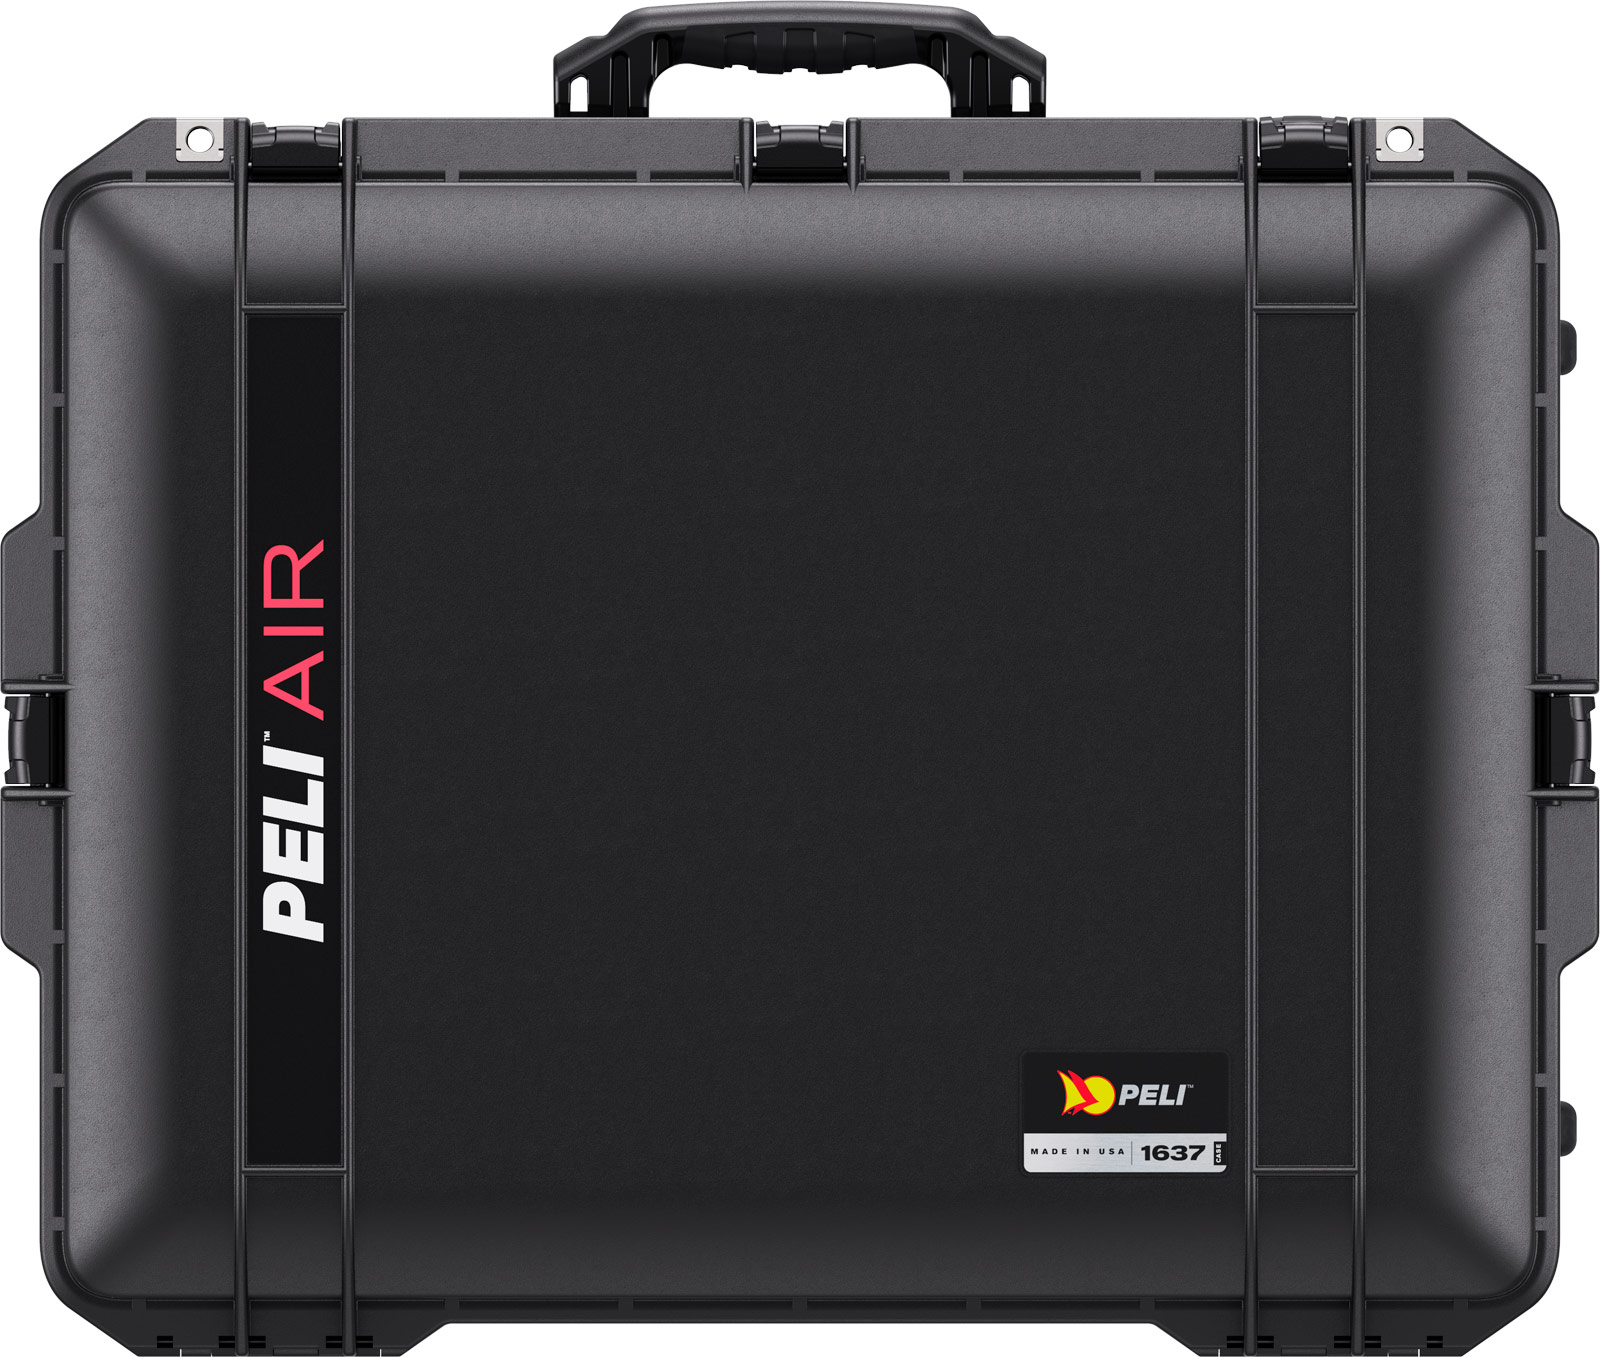 pelican 1637 air cases deep case rolling travel